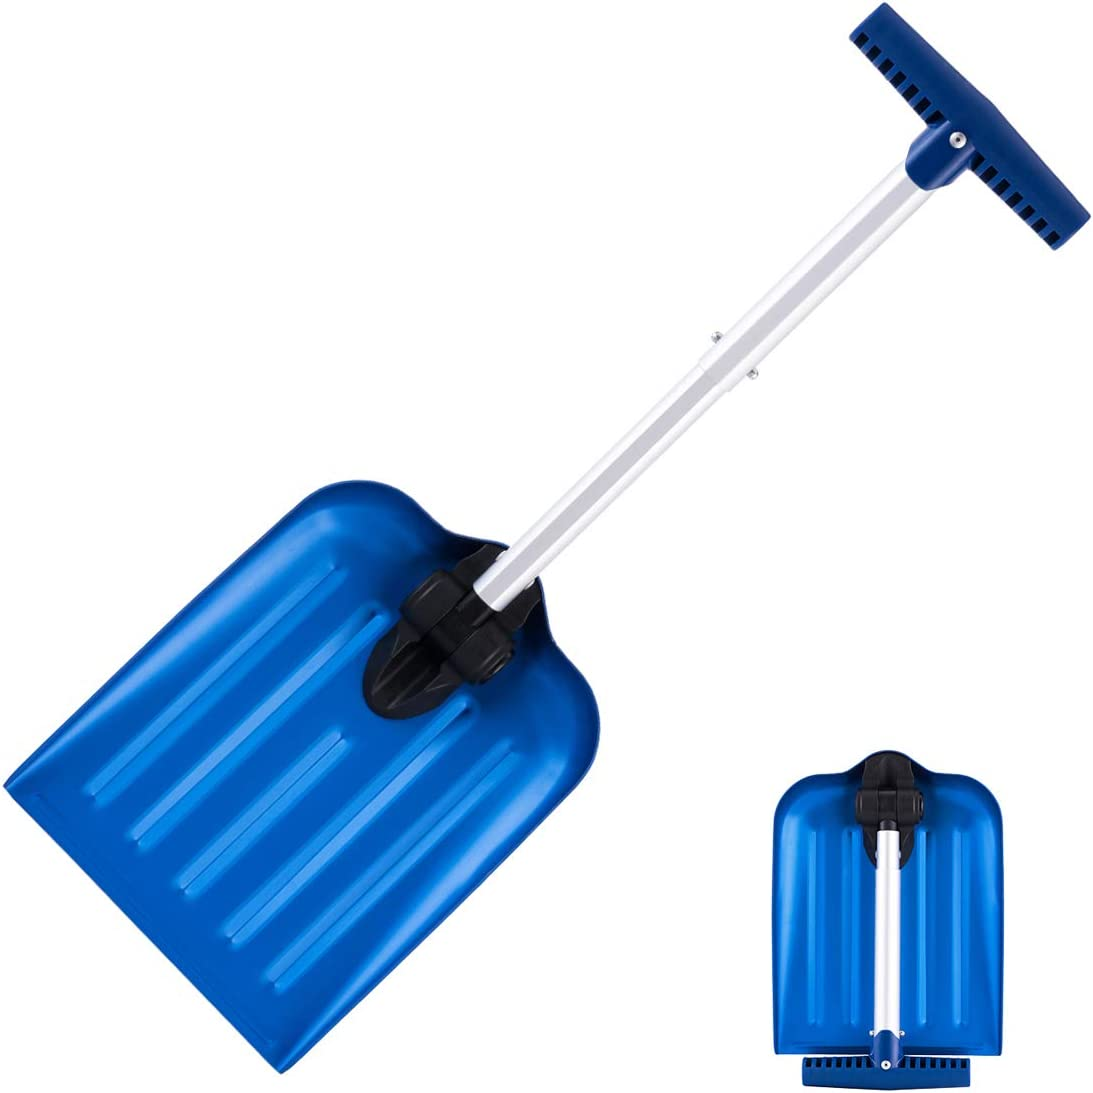 Blue Stalwart Collapsible Snow Shovel Aluminum Adjustable Spade with Easy Grip Handle for Roadside Emergency Kit and Safety in Vehicles